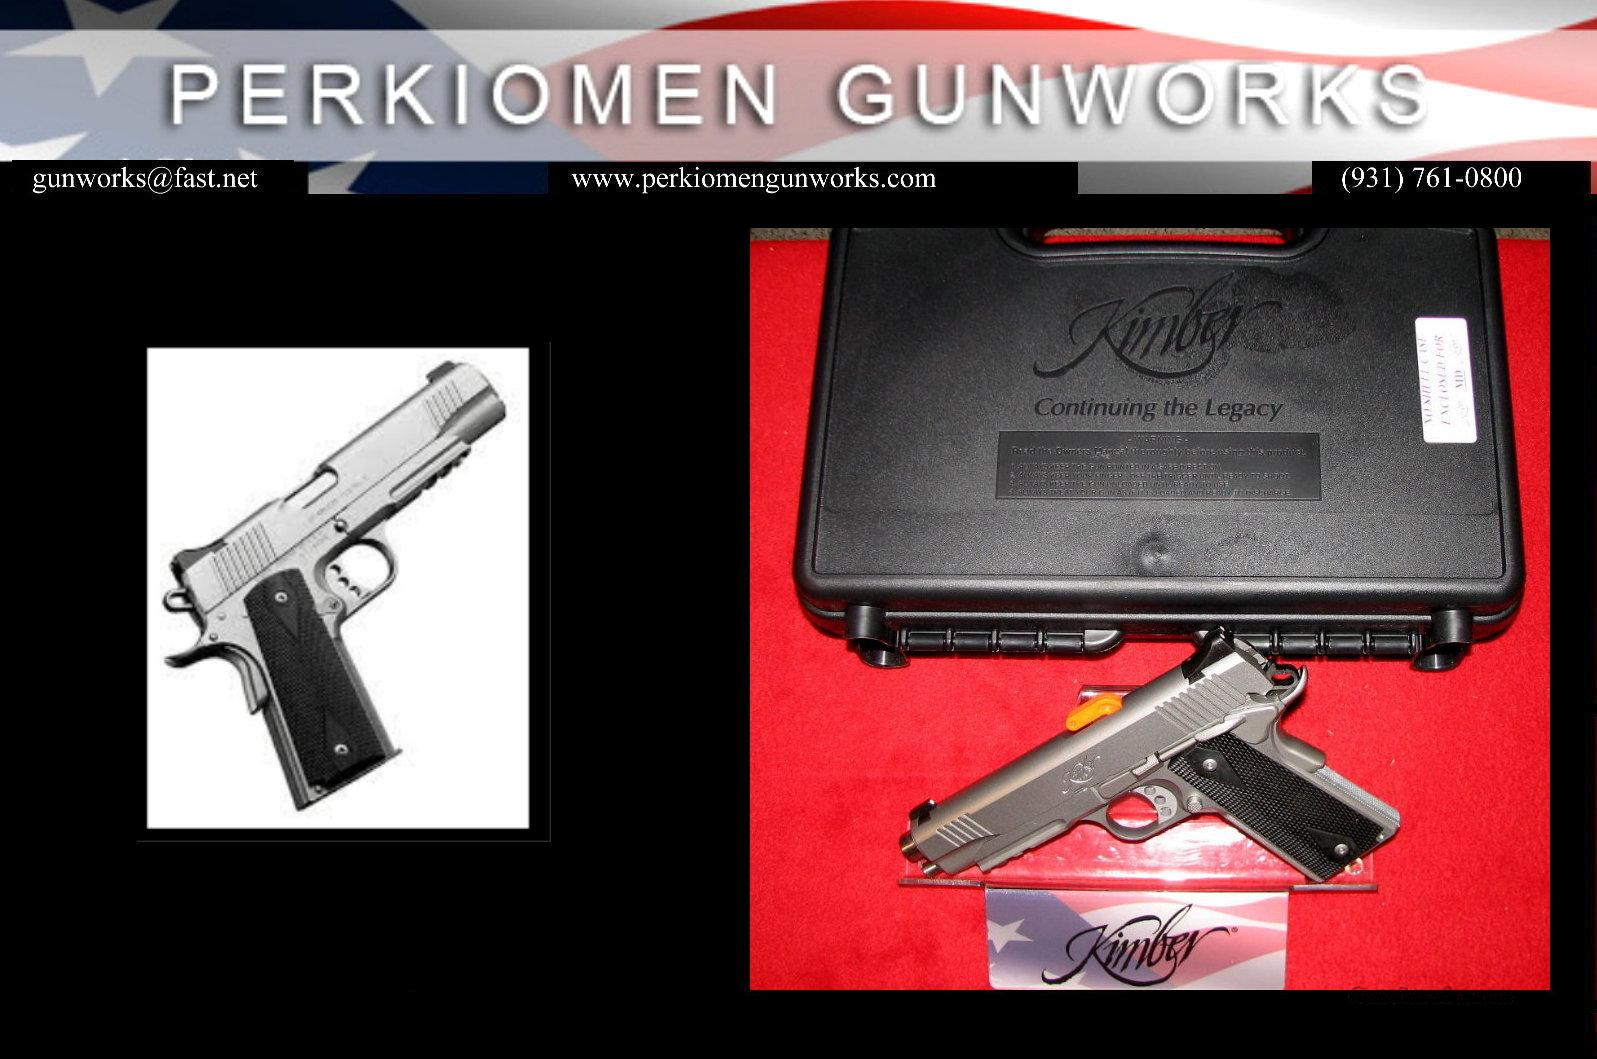 "Stainless TLE/RL, 45acp, 5"", New in Box.  Guns > Pistols > Kimber of America Pistols"